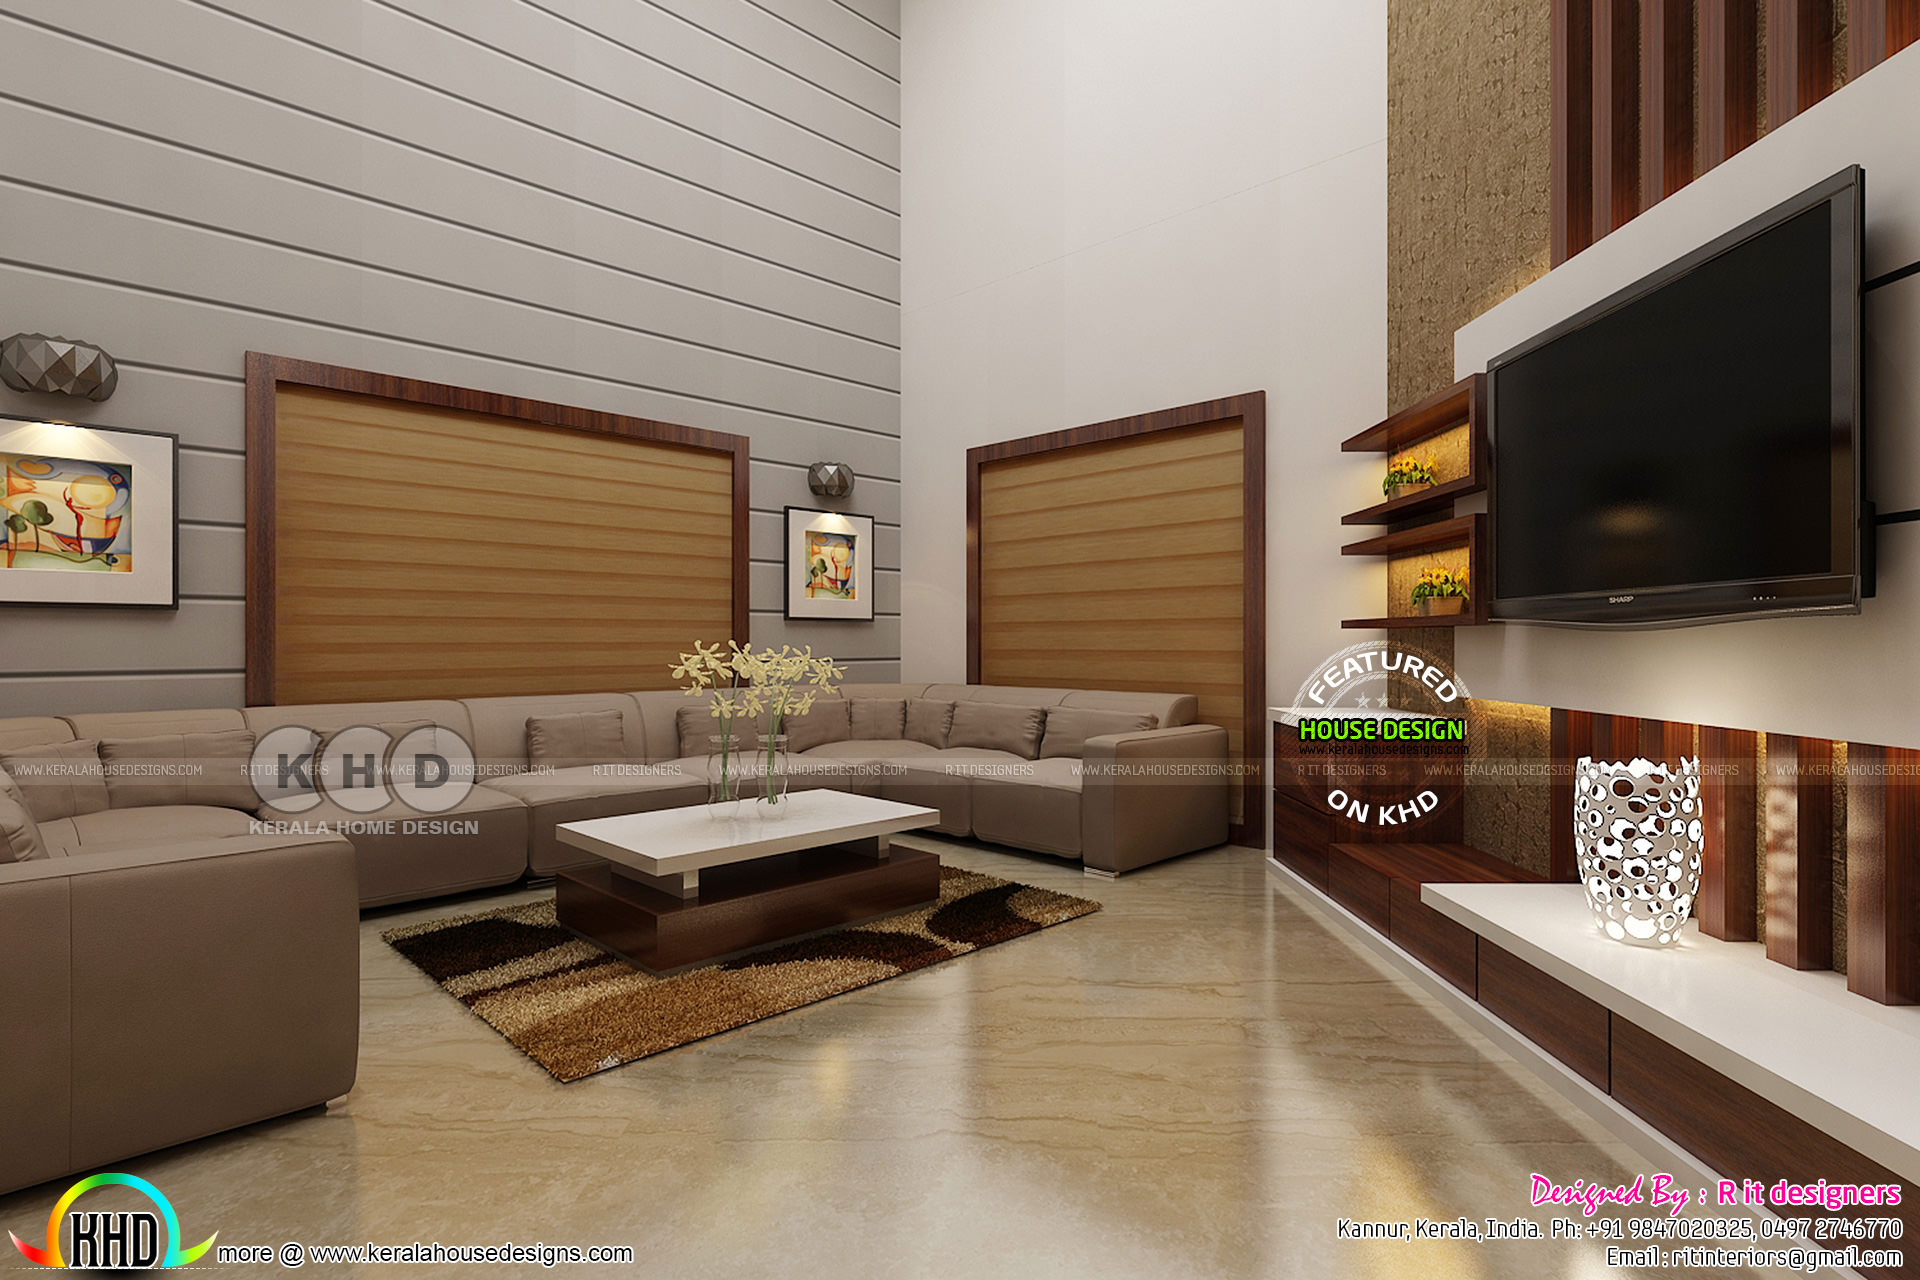 Dining area and living interior designs  Kerala home design and floor plans